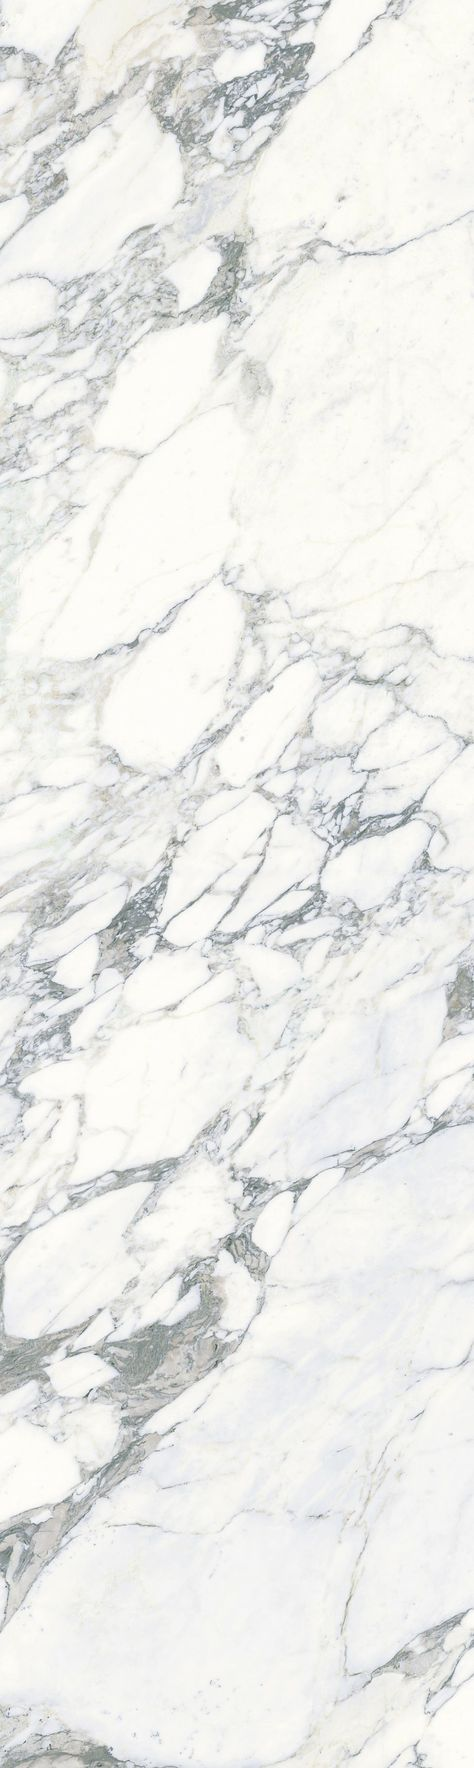 New Wallpaper Tumblr Aesthetic Marble Ideas